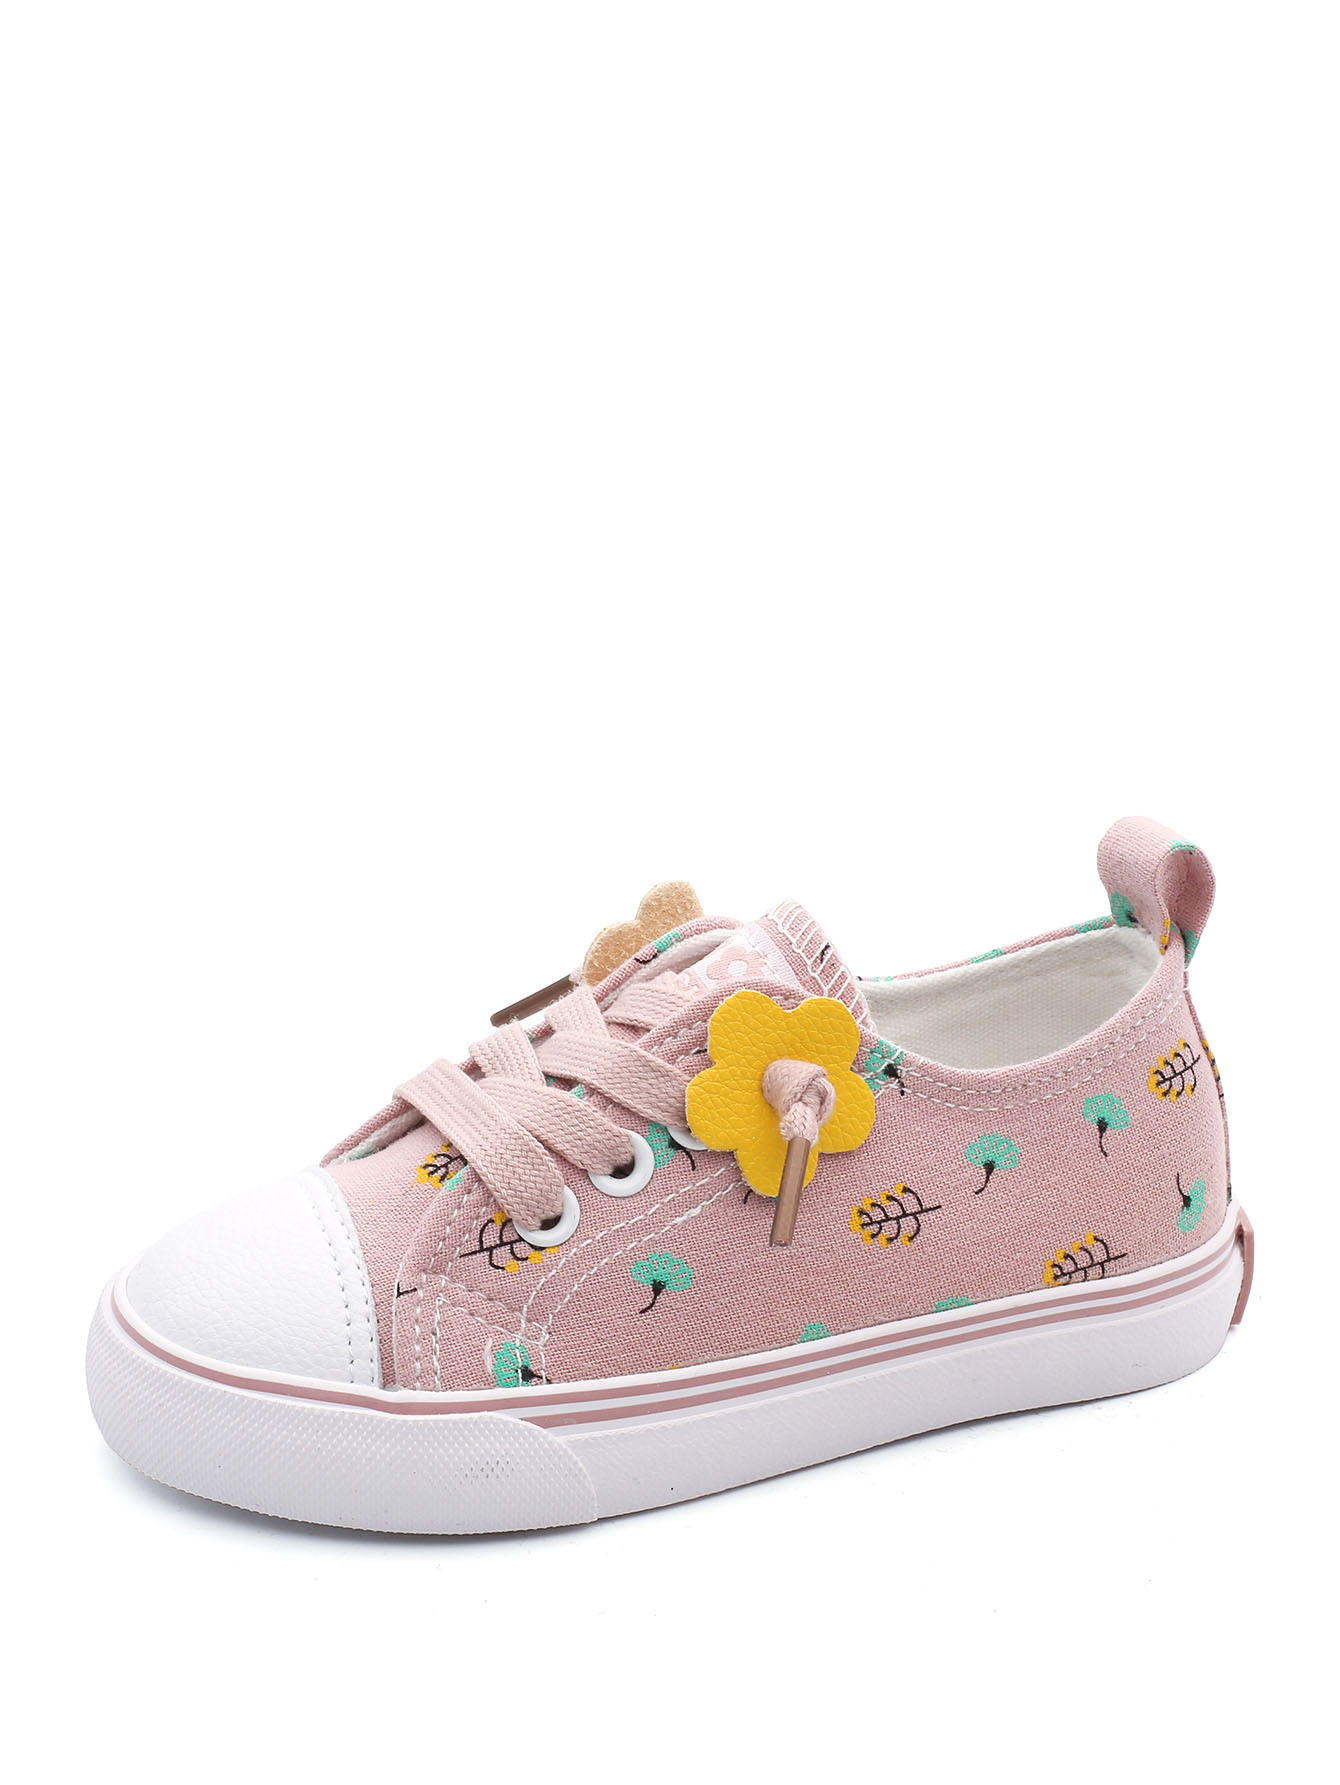 Kids Floral Pattern Lace-up Sneakers null